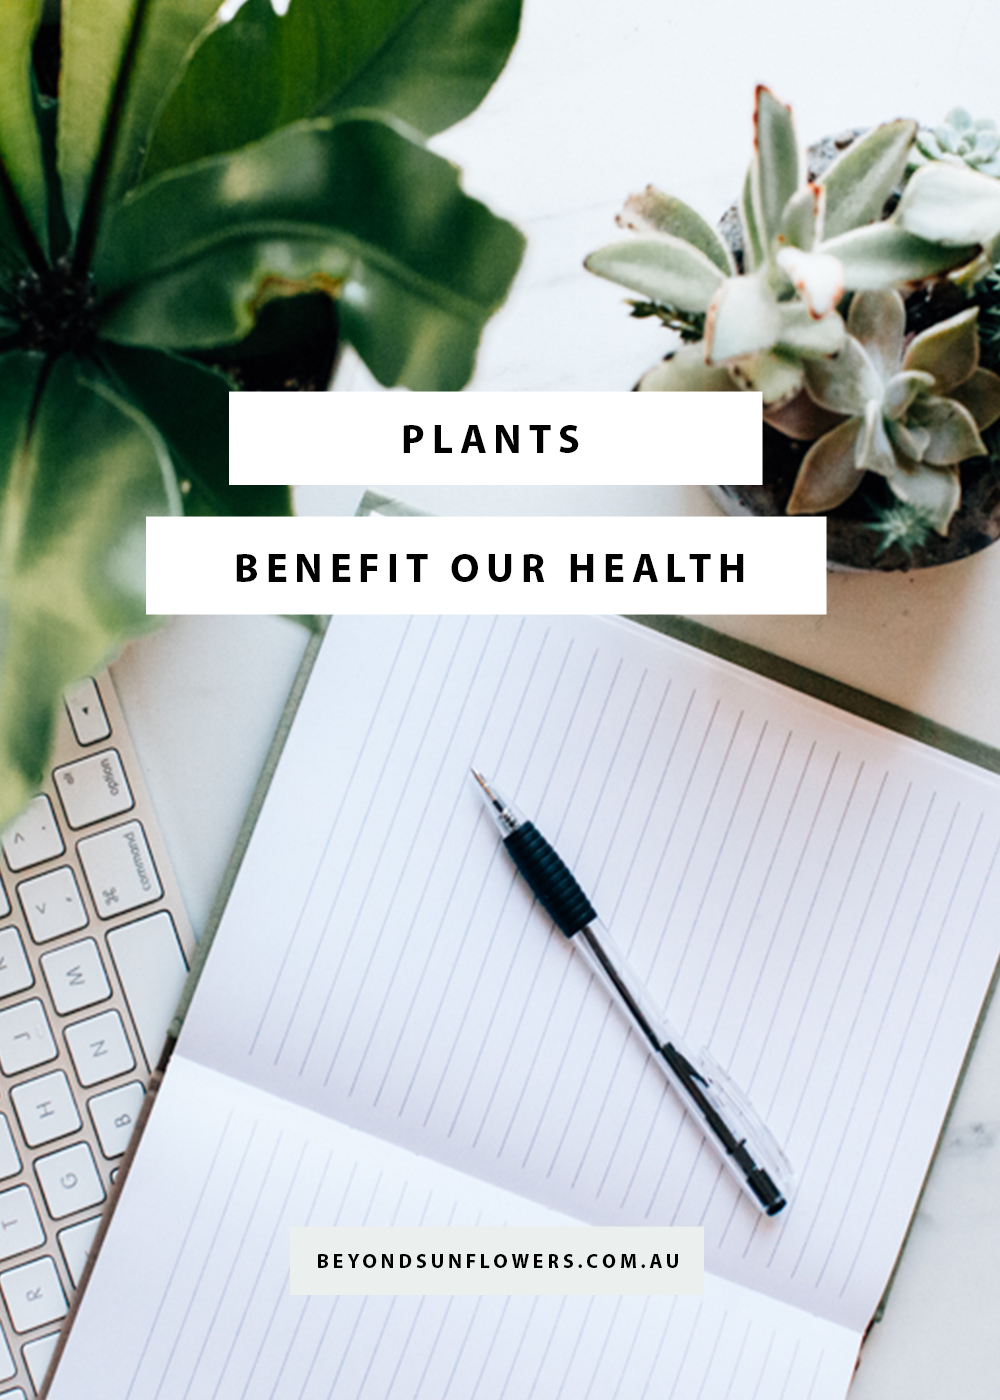 Plants benefit our health